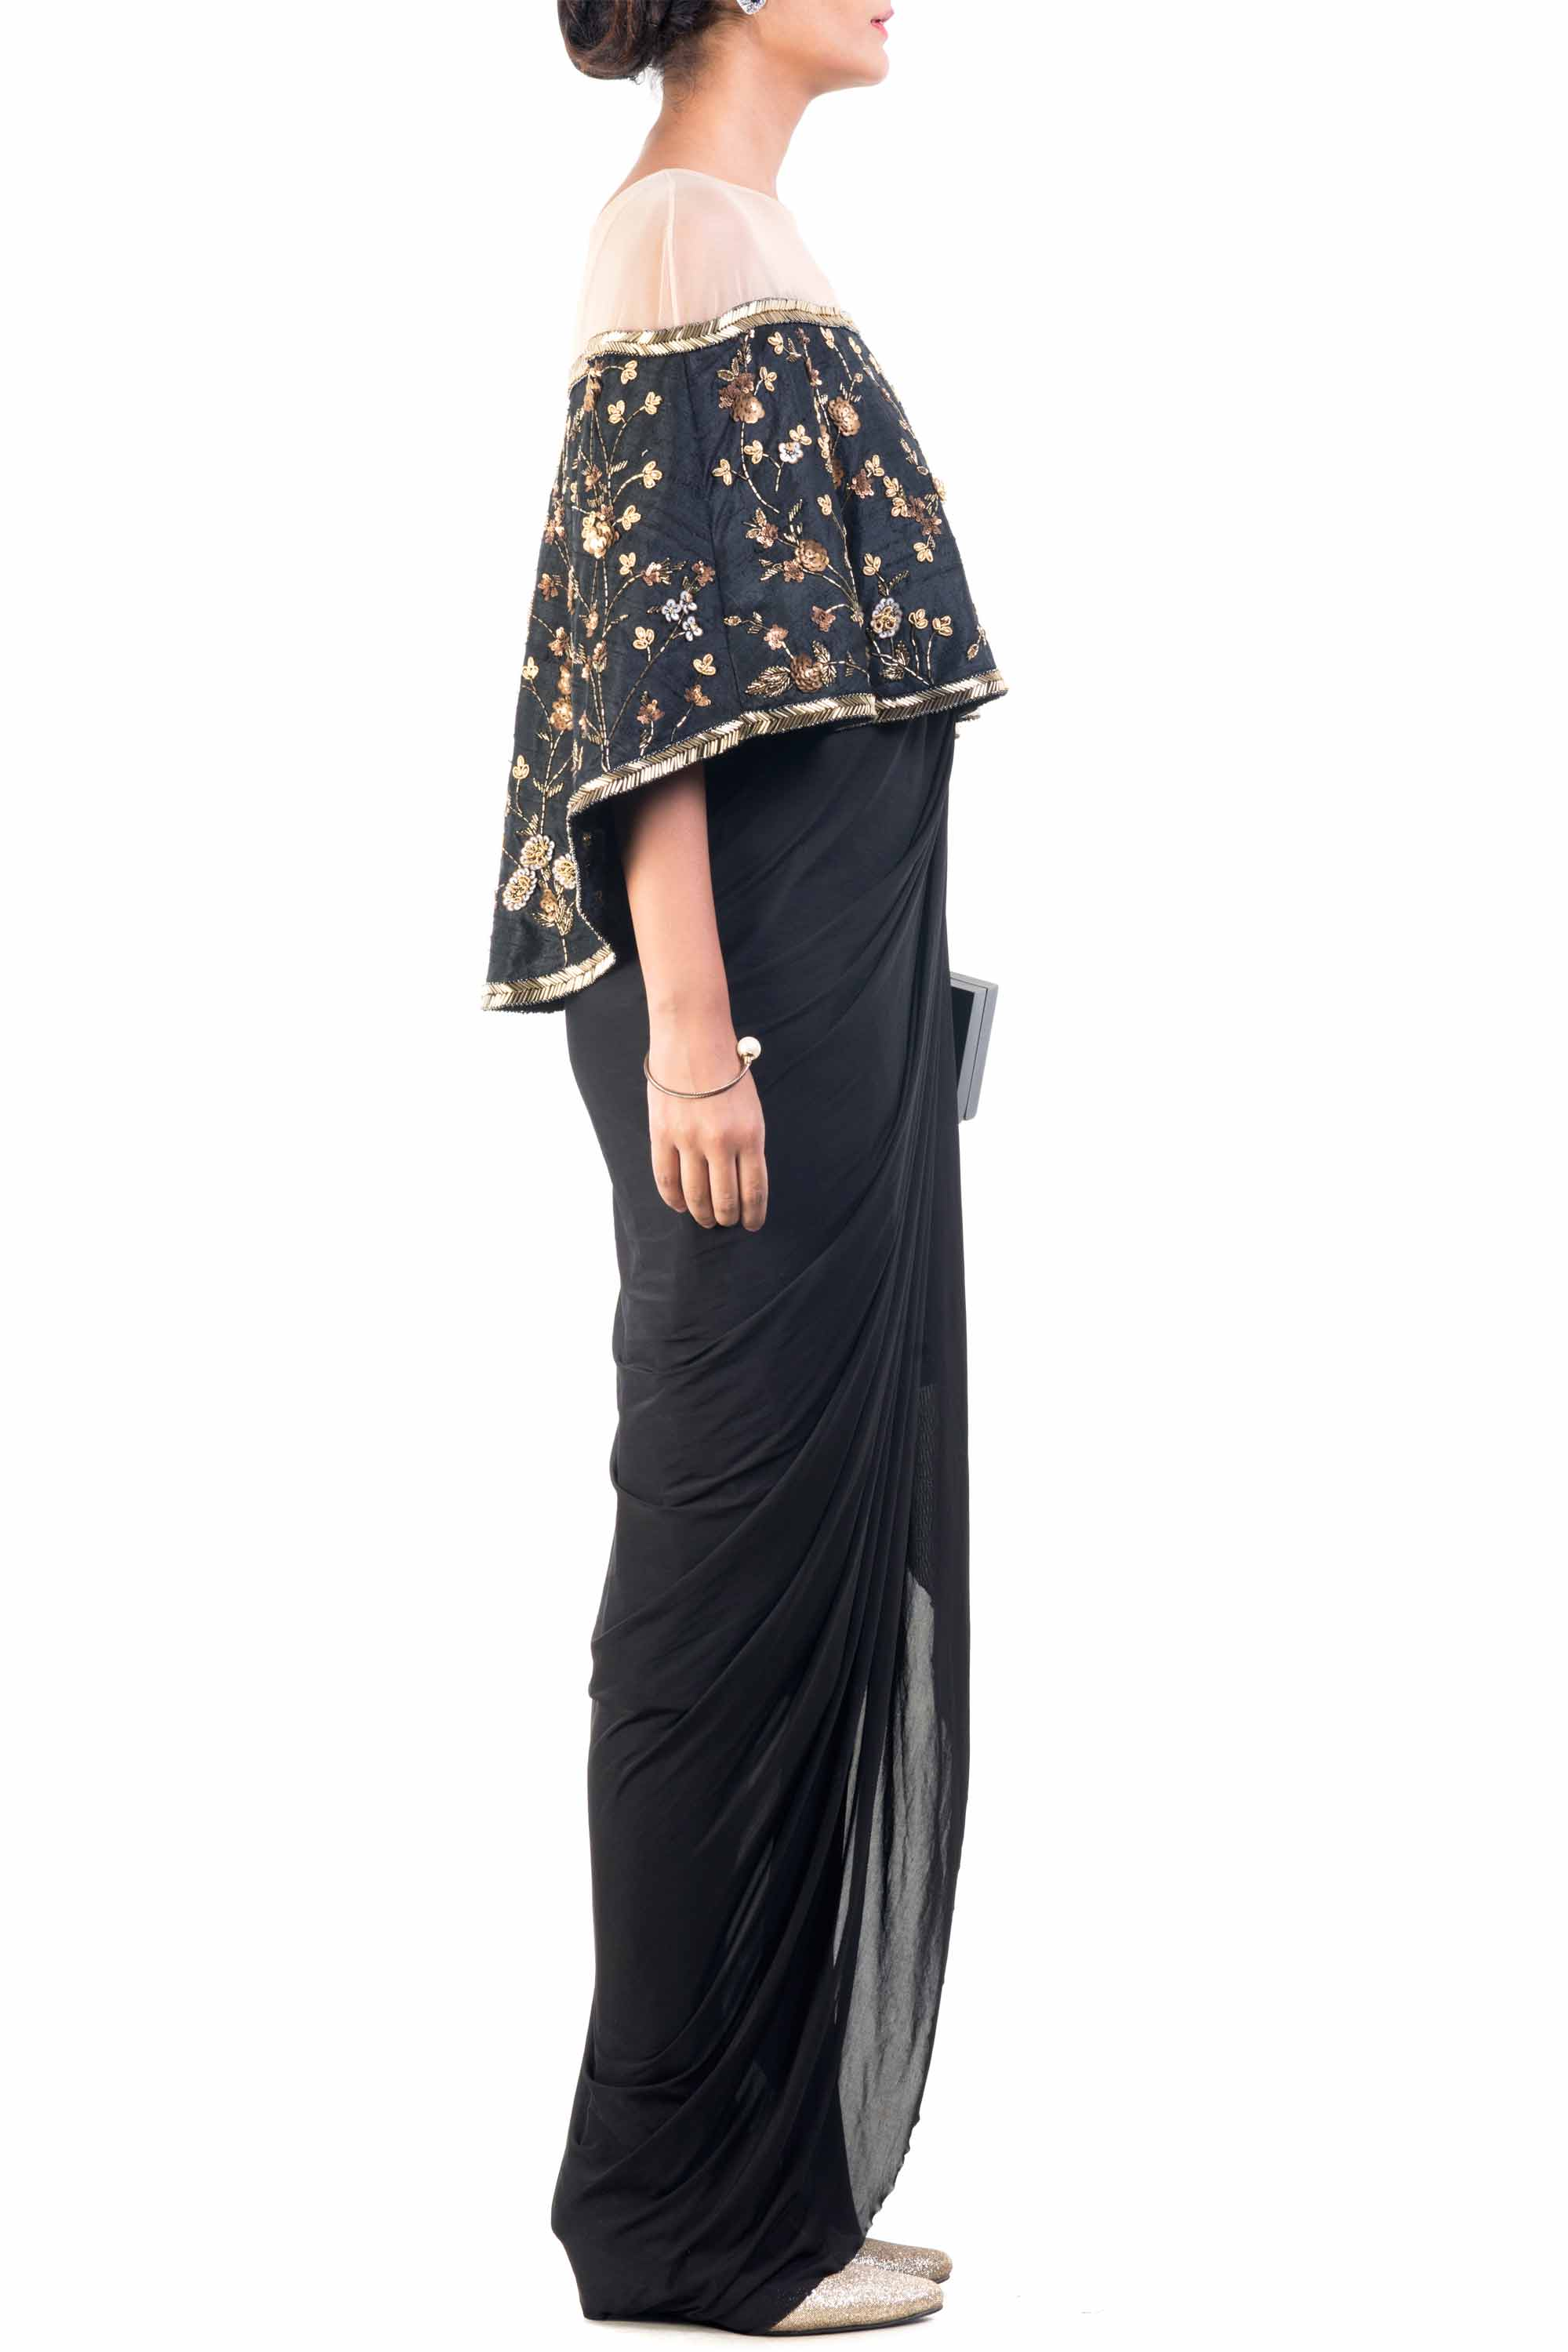 Gilded Black Cocktail Cape Set Side